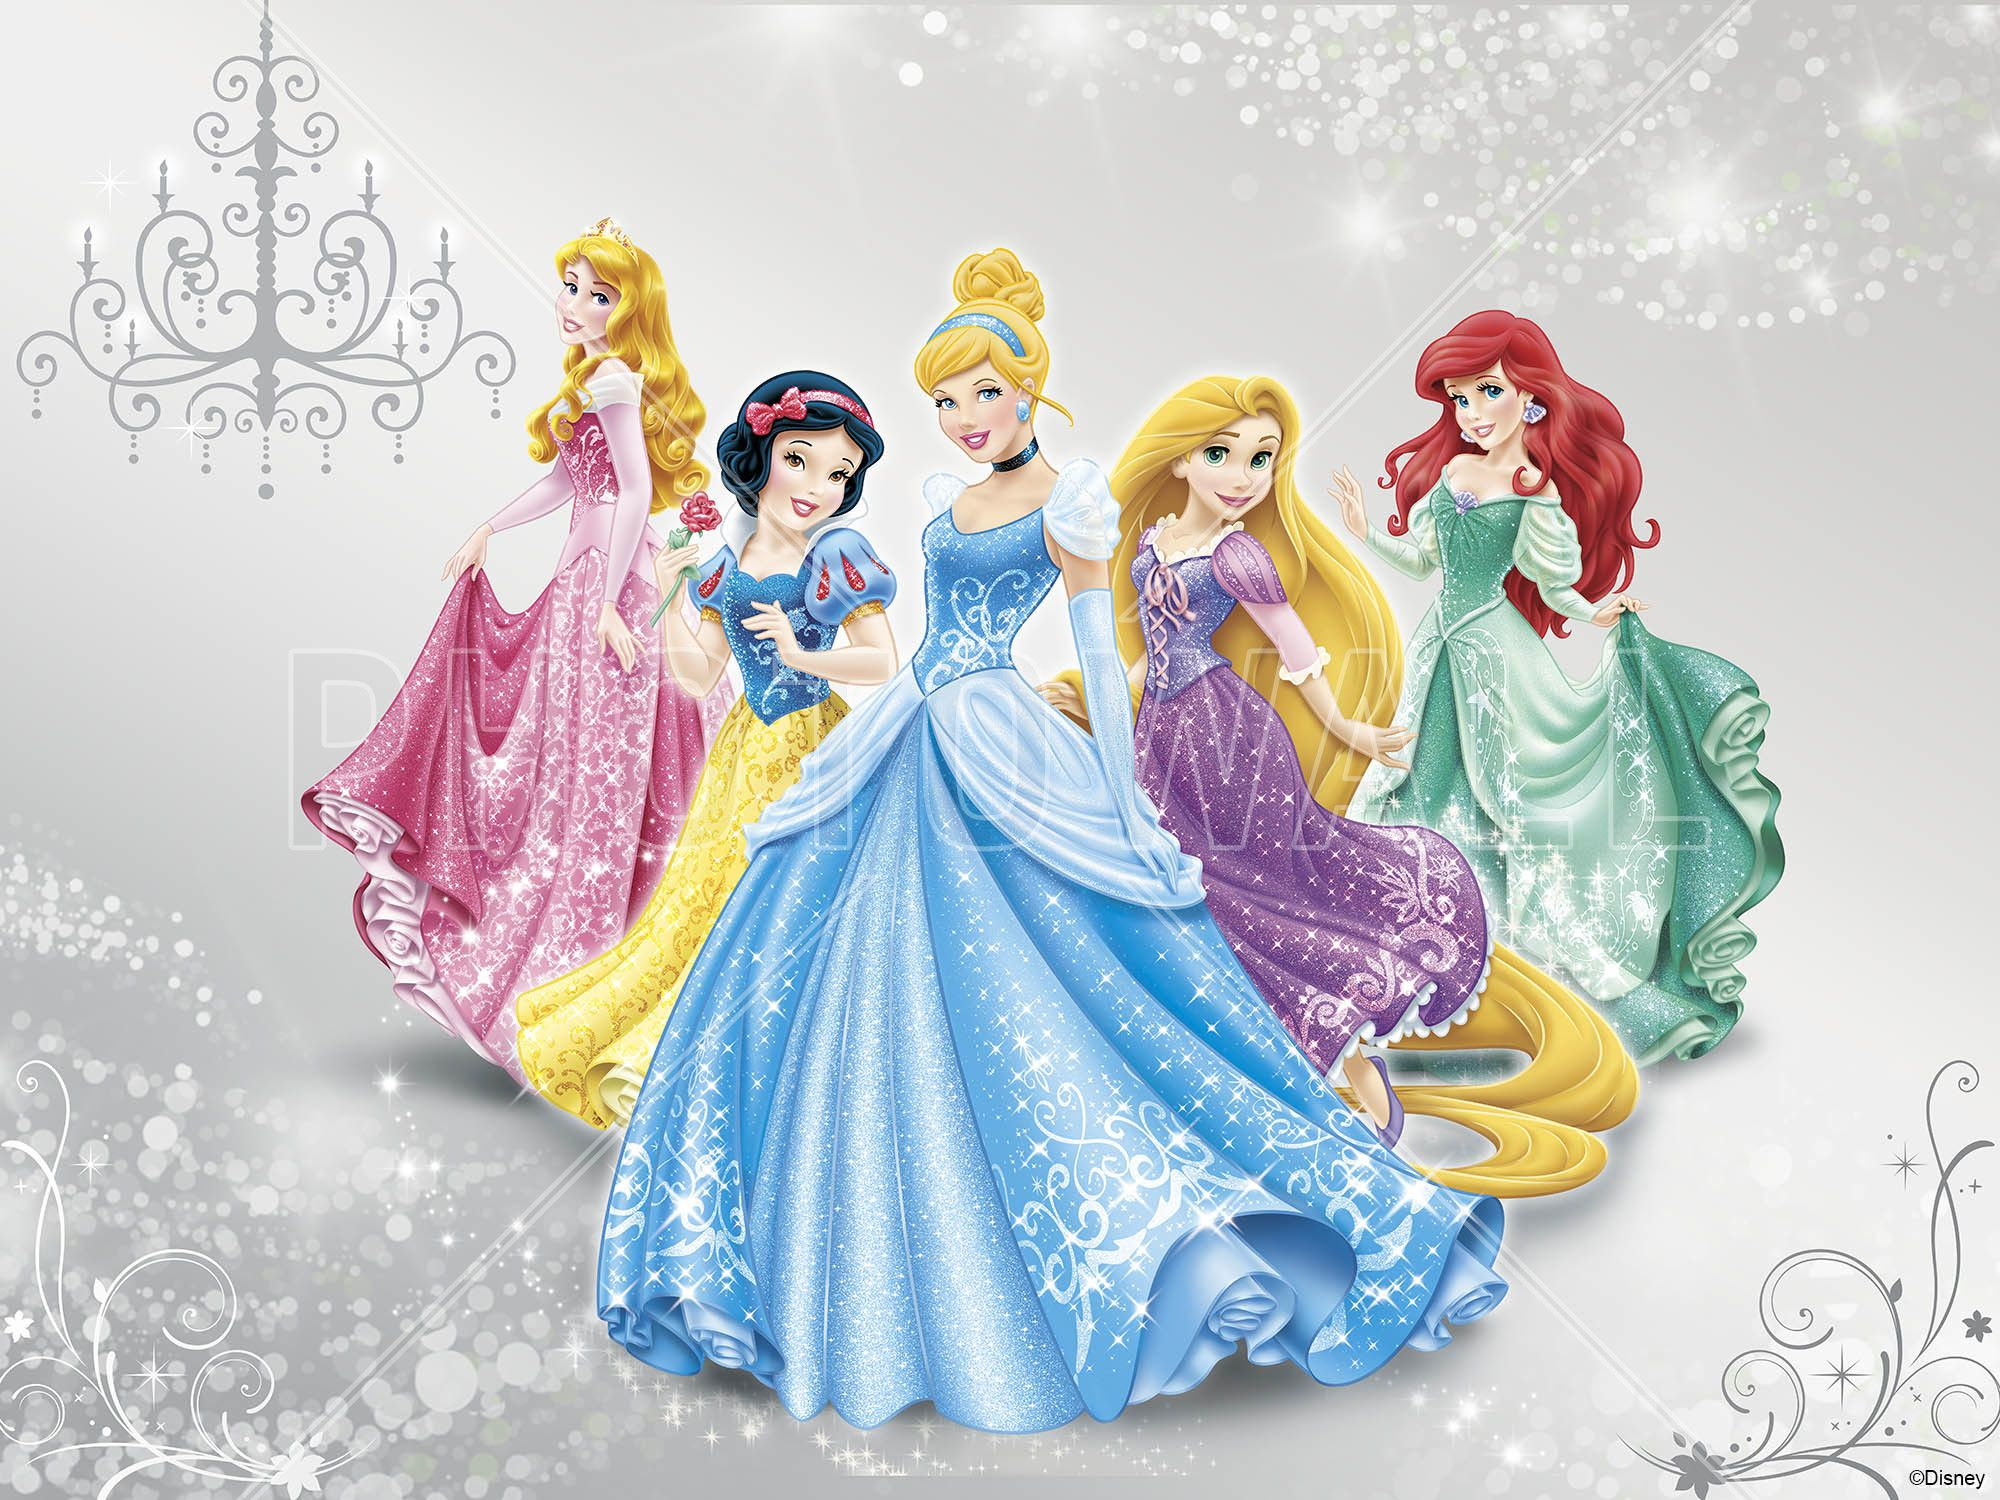 Cinderella Disney Princess Wallpapers Full Hd Disney